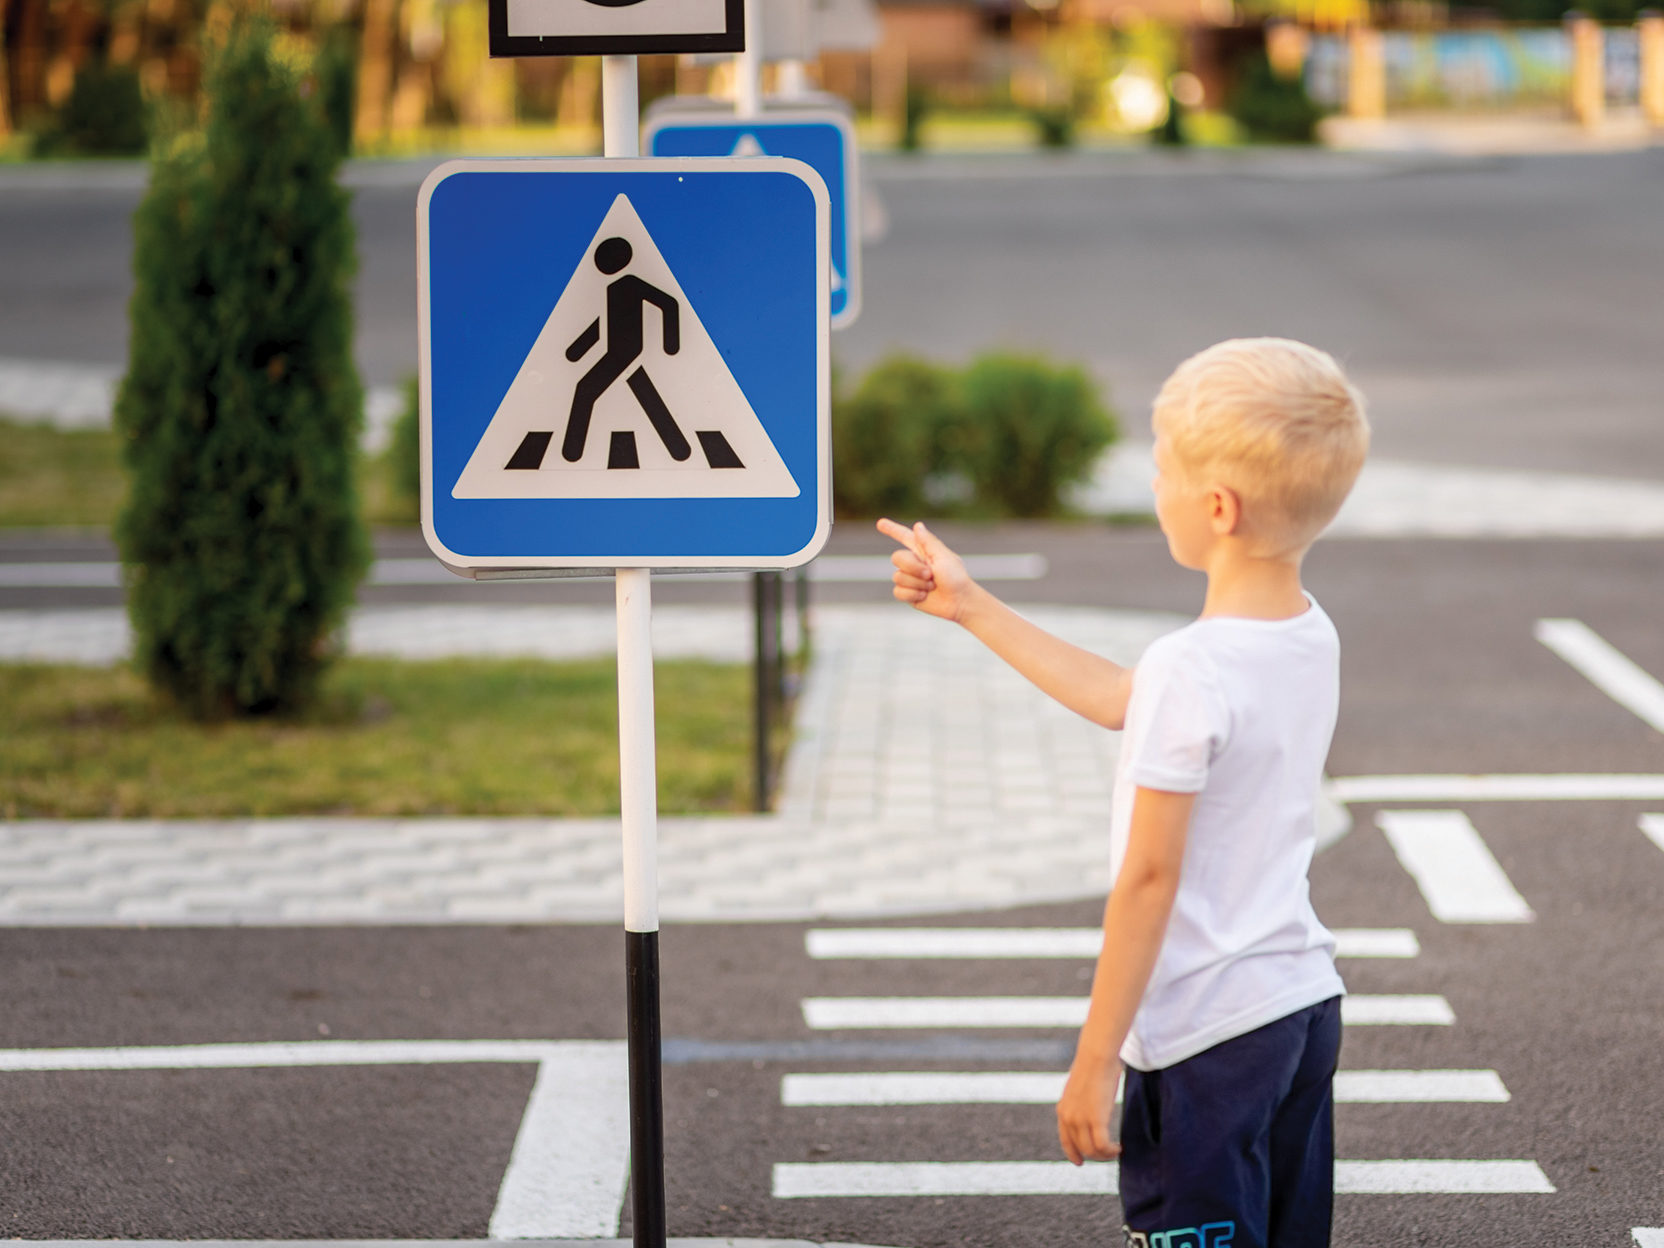 Child pointing at sign